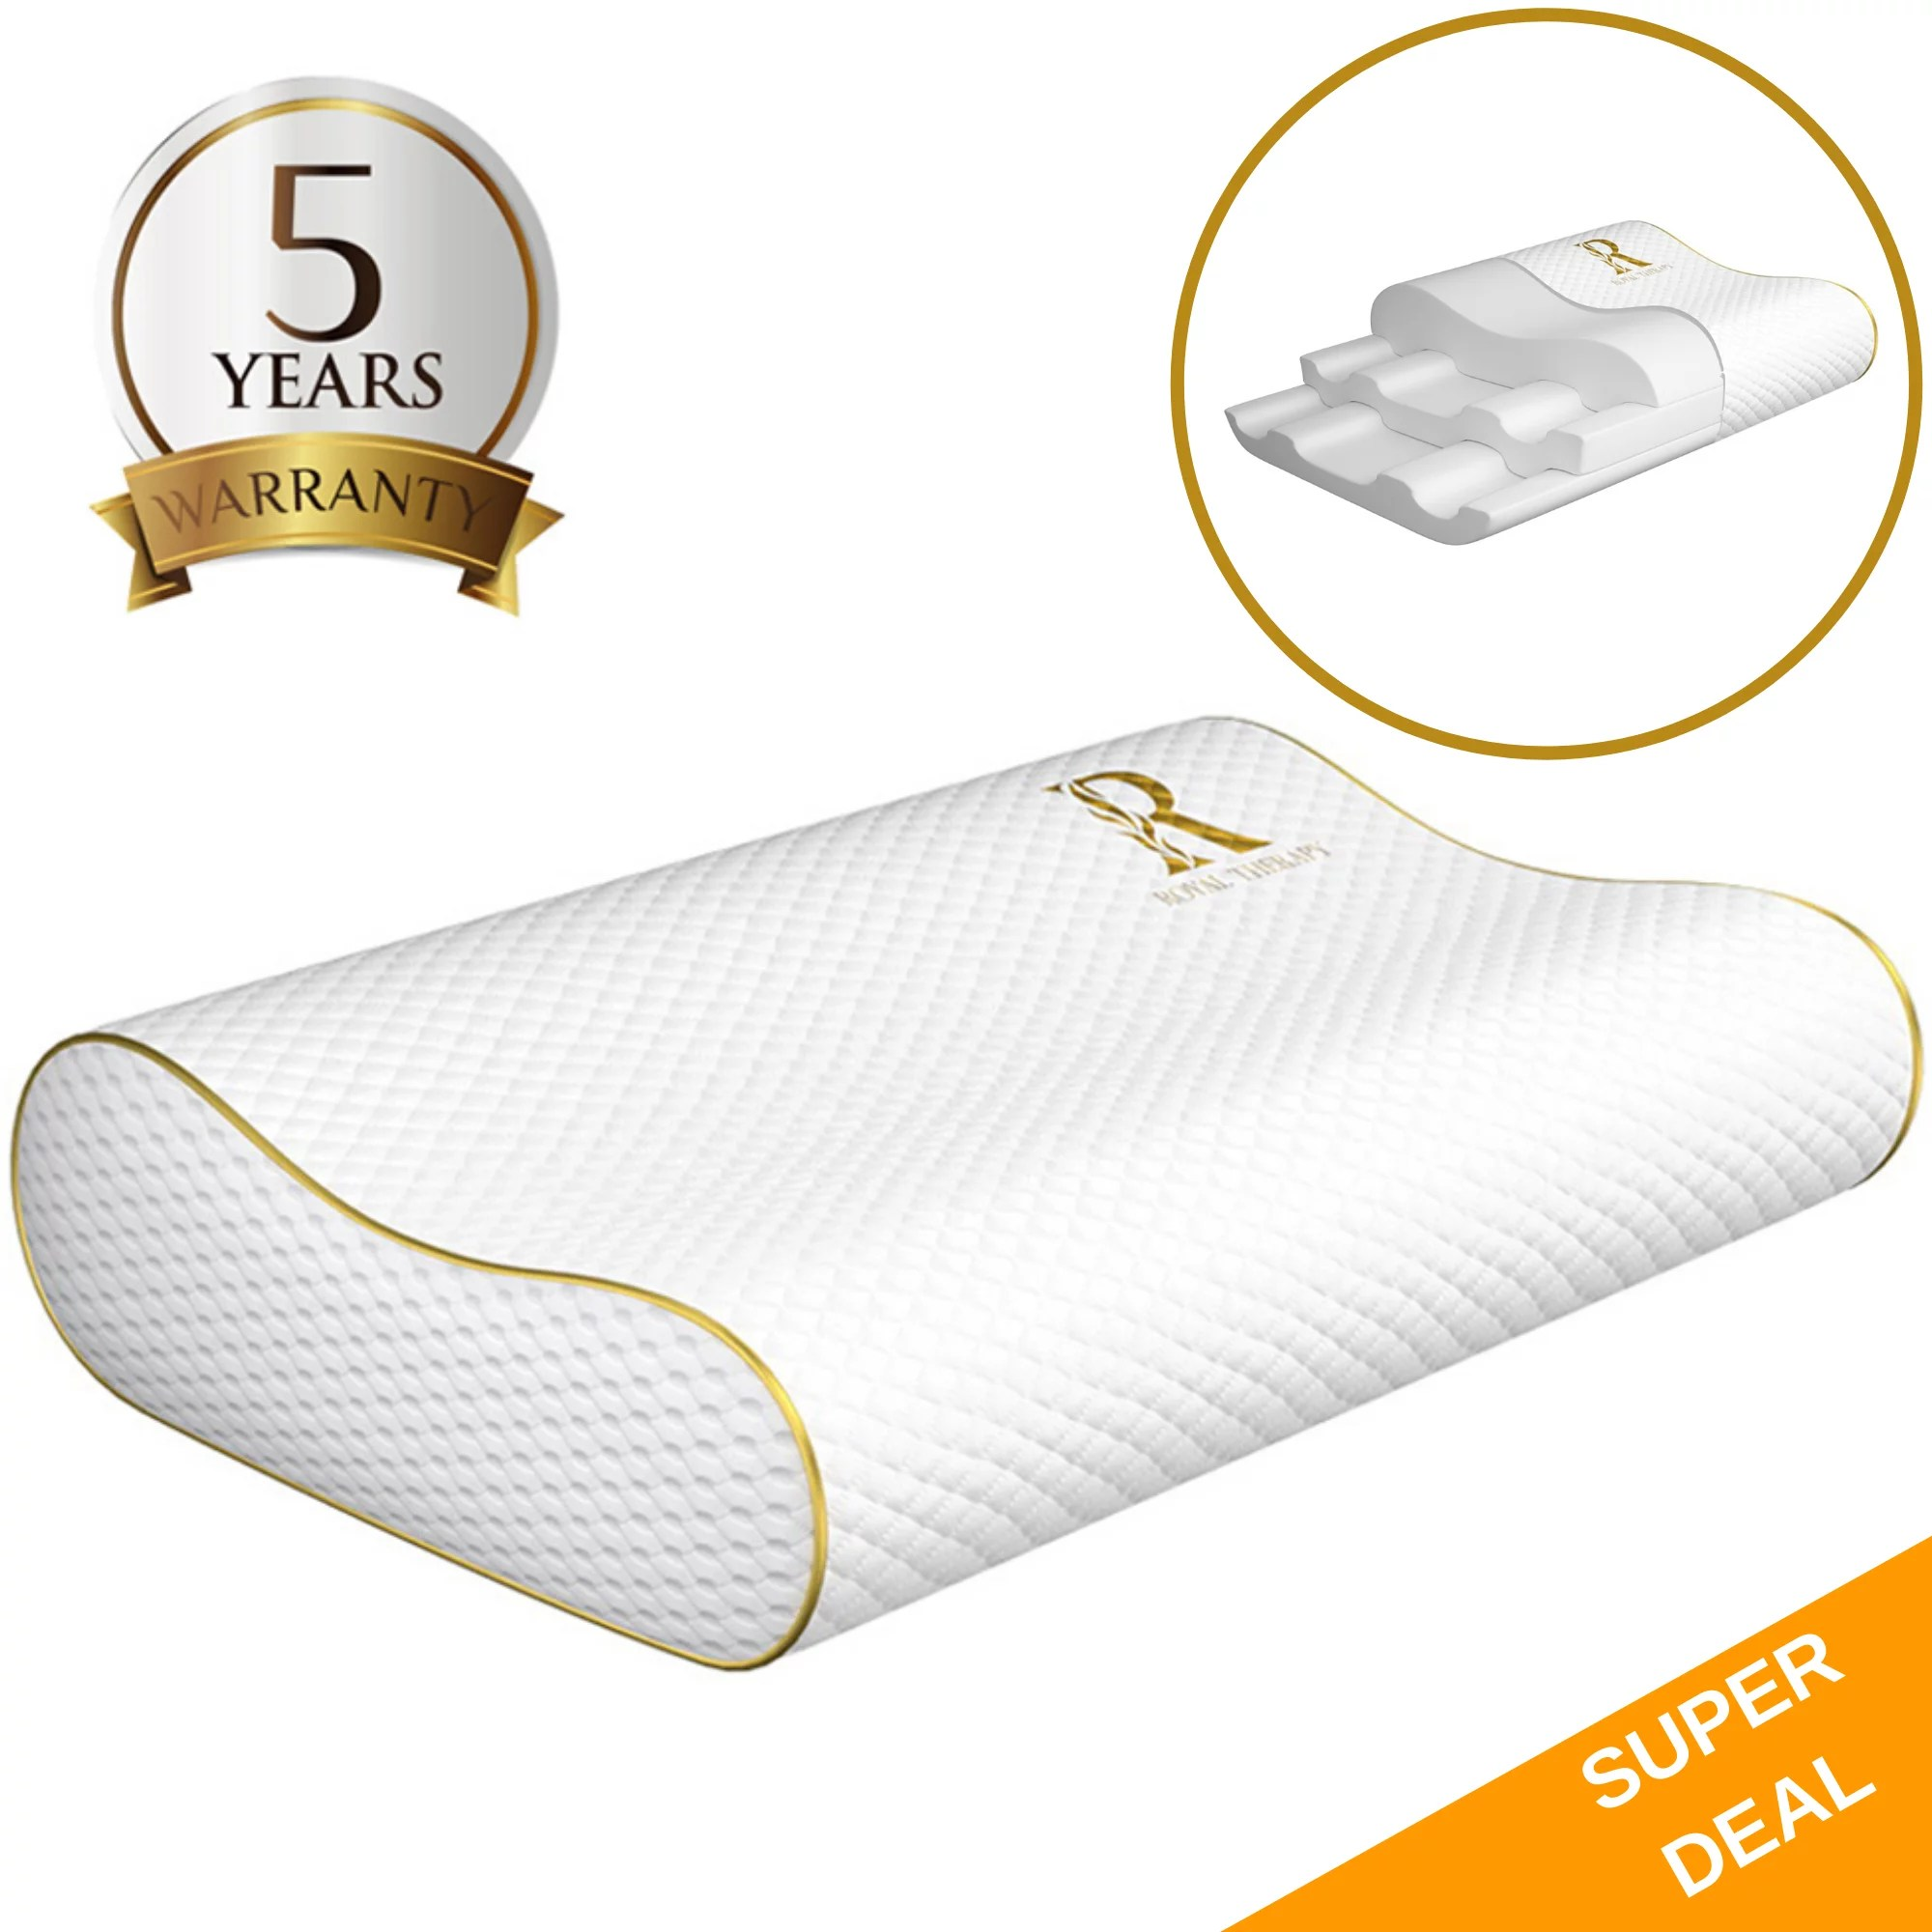 royal therapy king memory foam pillow bed pillow for neck shoulder support tempurpedic contour pillow walmart com